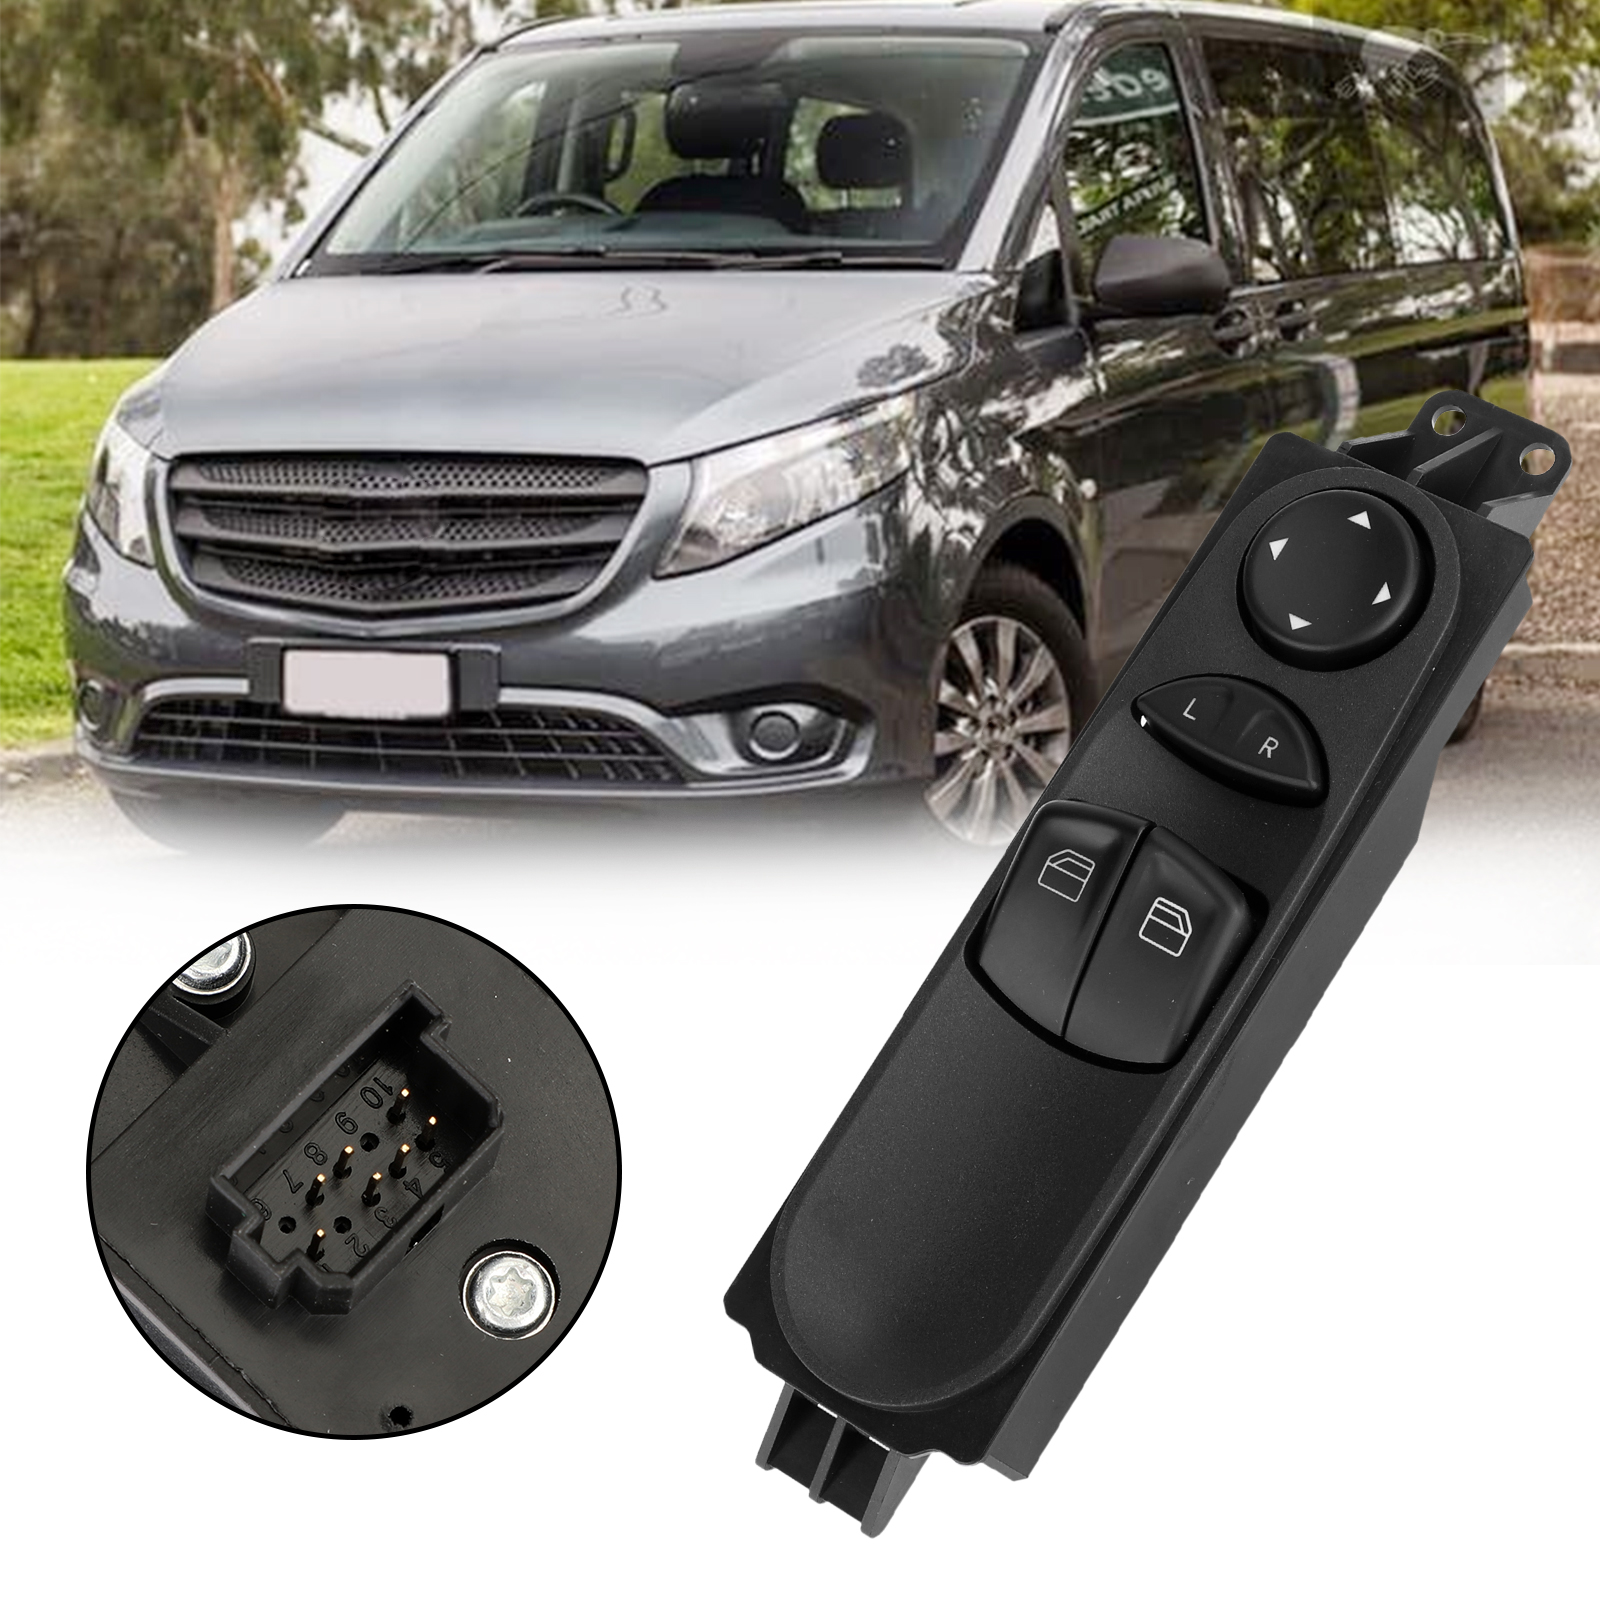 Front Power Master Control Window Switch for Benz W639 Vito 2003-15 A6395450913